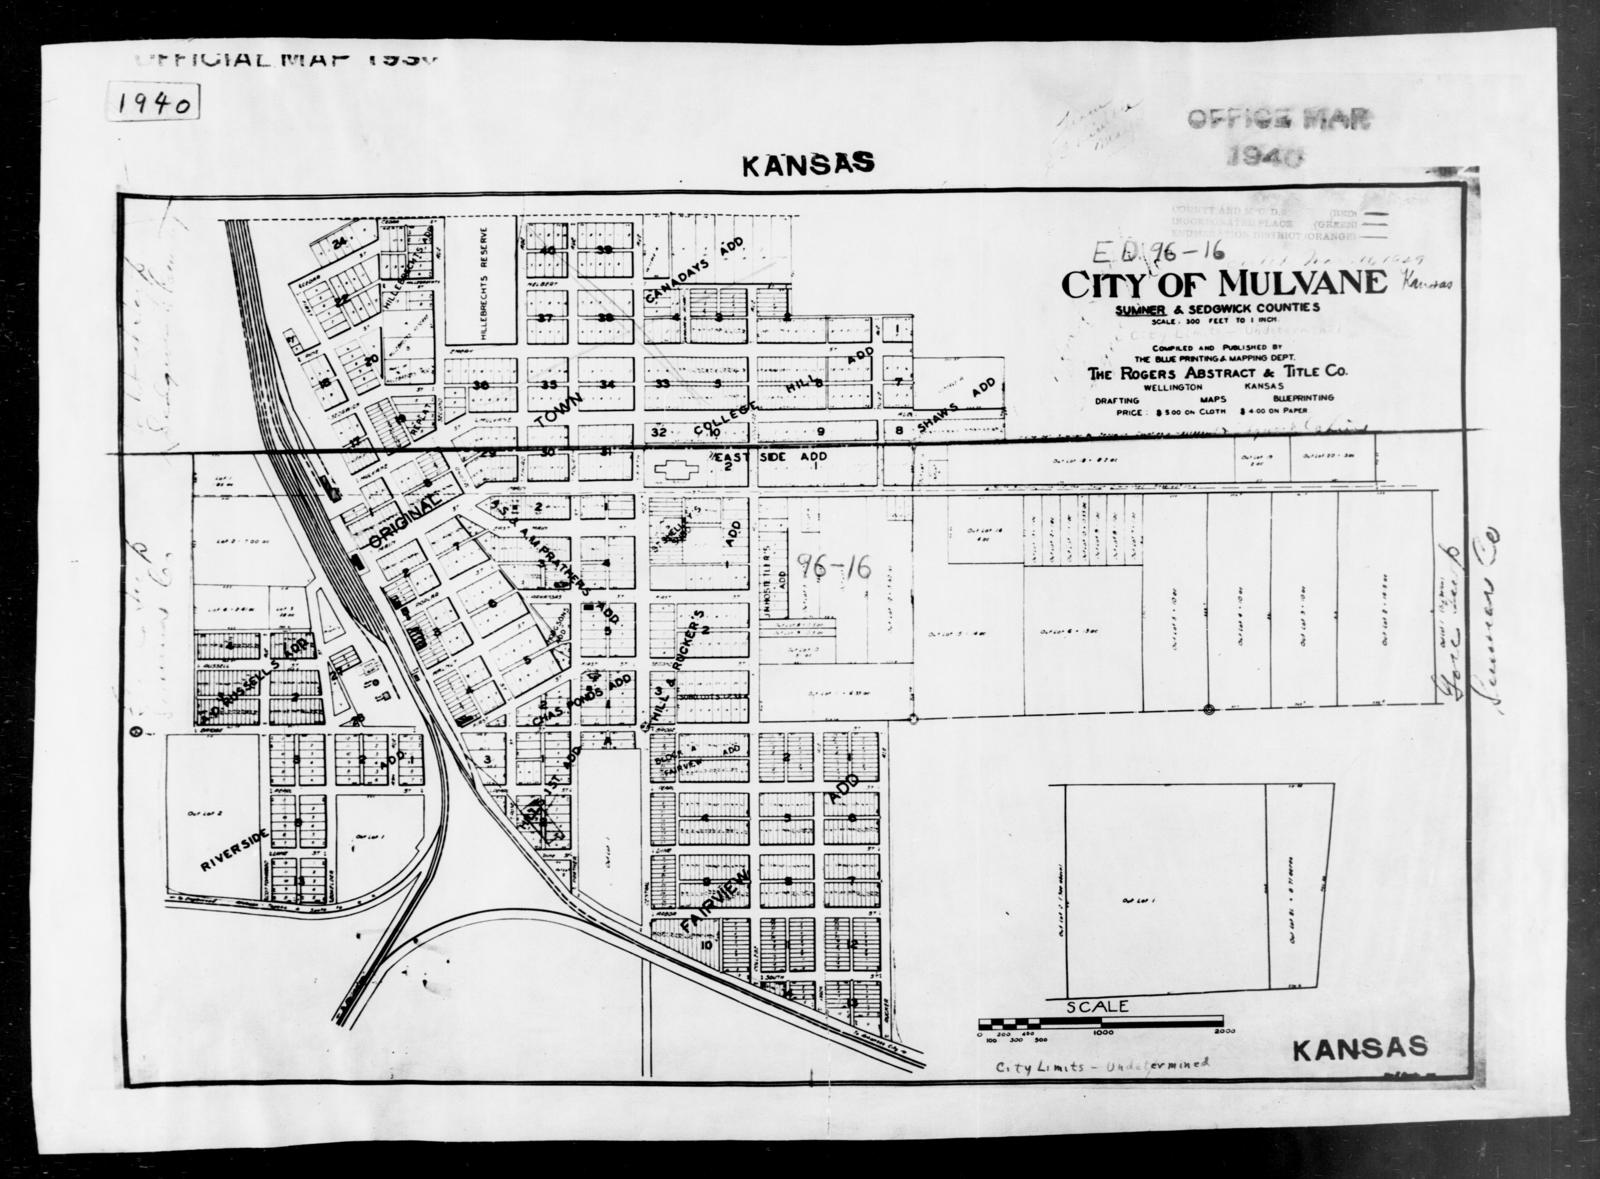 Sumner County Kansas Map.1940 Census Enumeration District Maps Kansas Sumner County